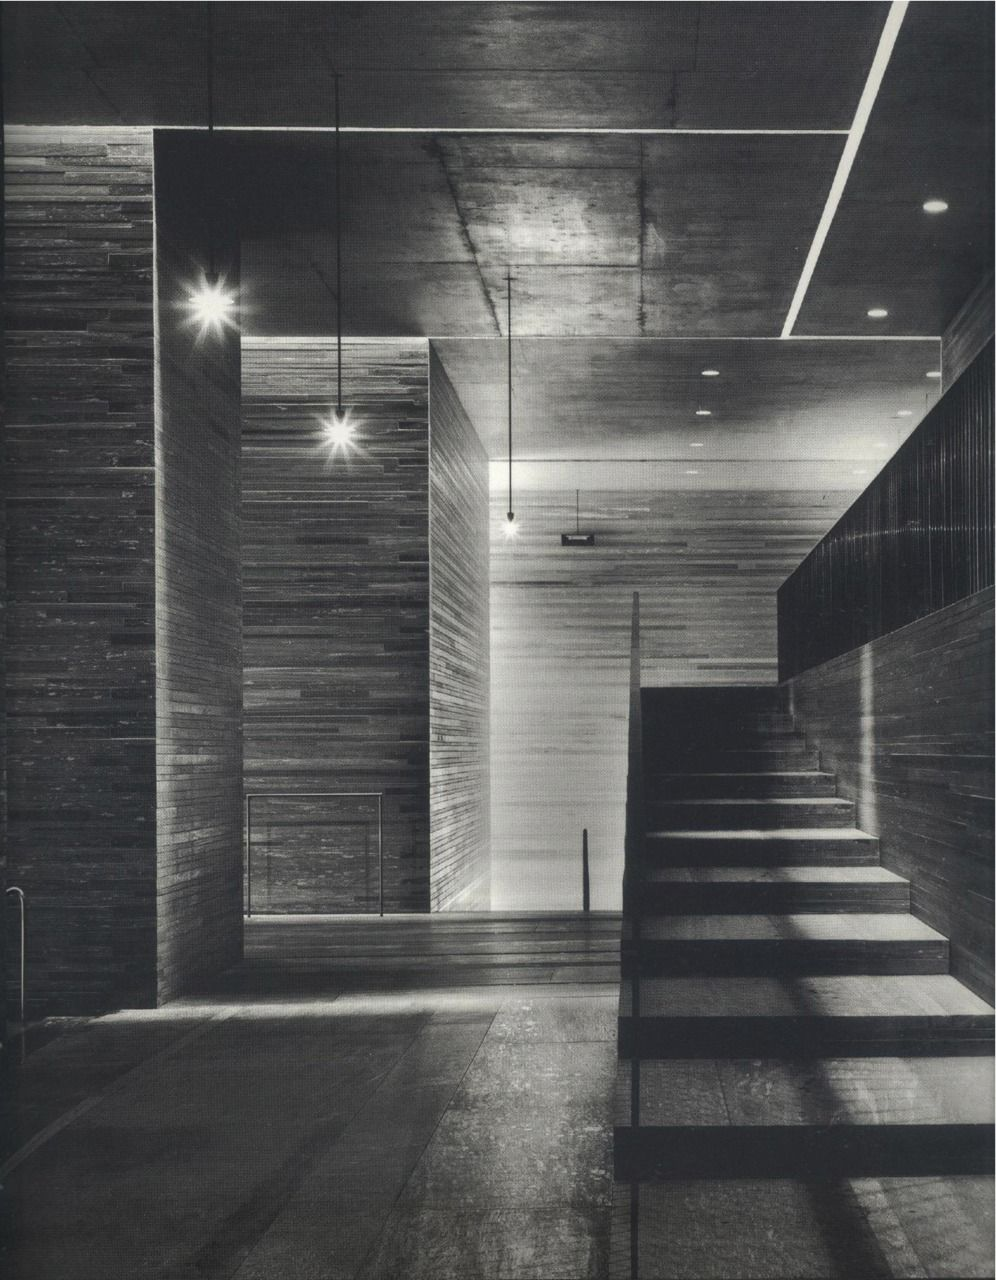 zumthor Peter Zumthor's spa threatened? Star architect